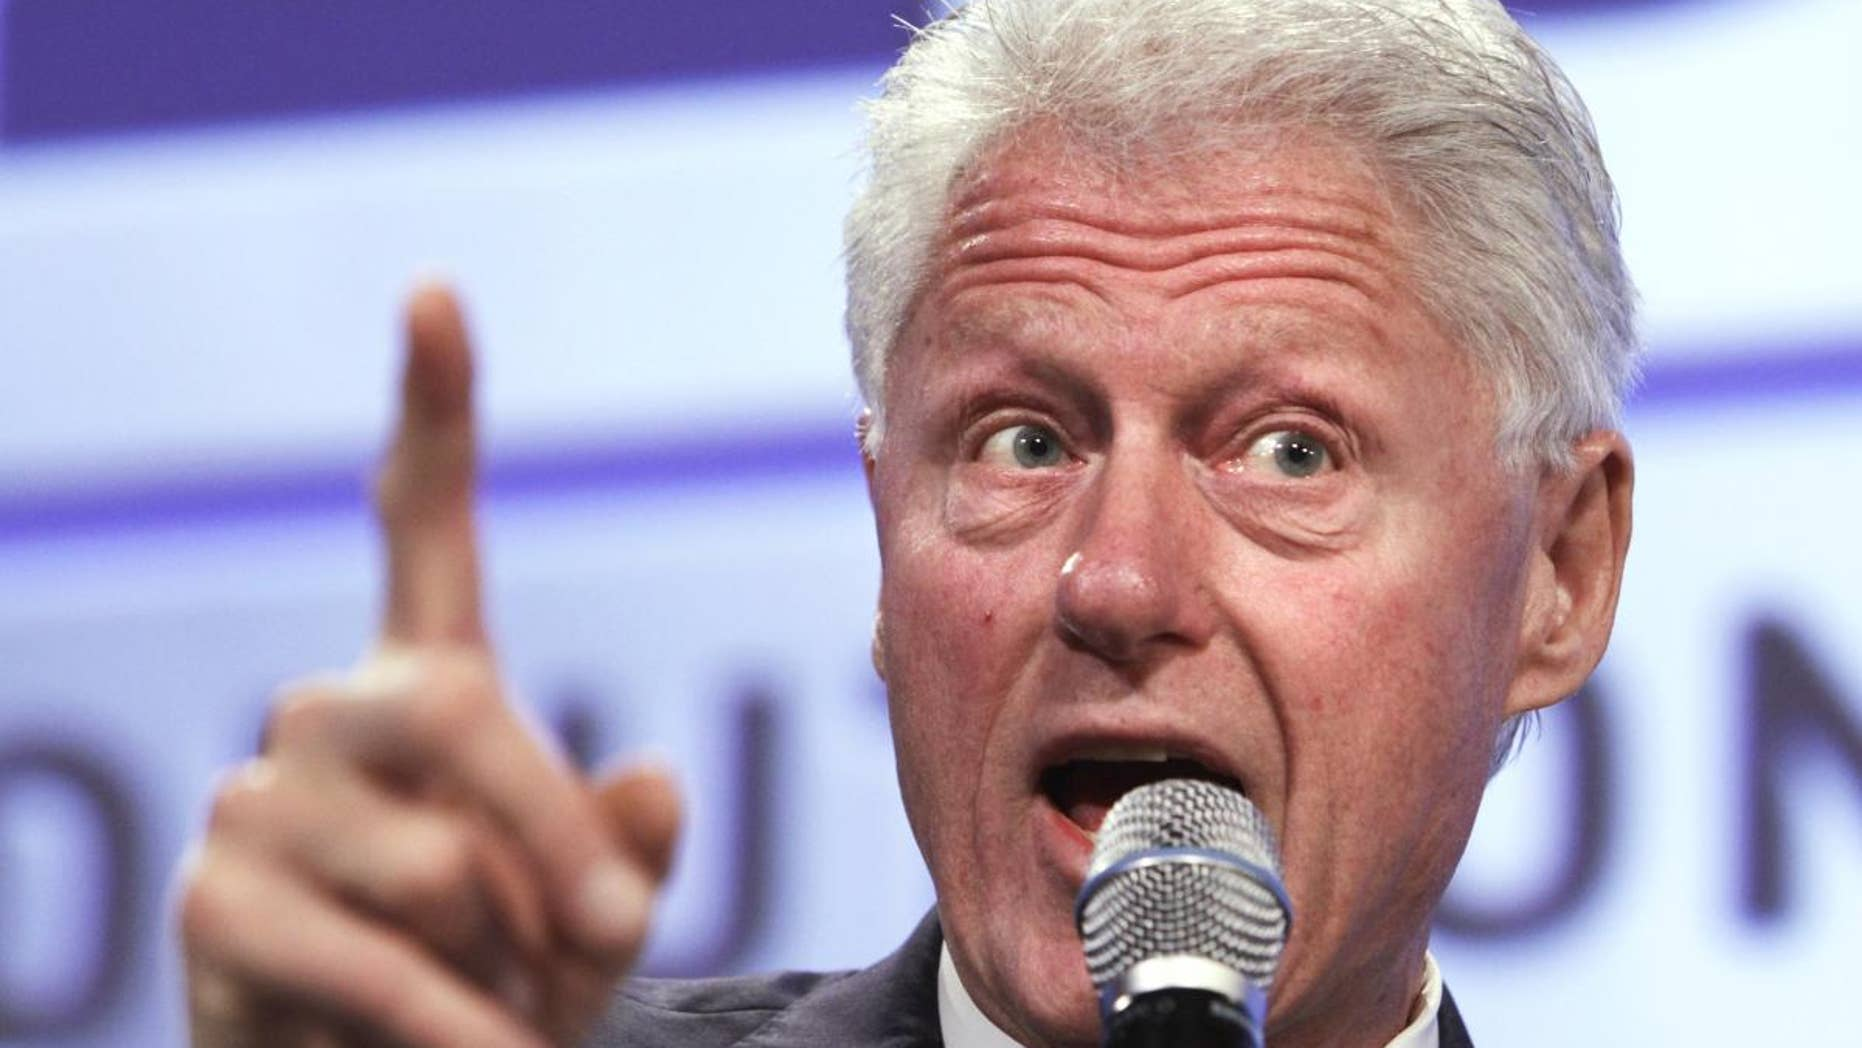 Former President Bill Clinton speaks at the 2011 Fiscal Summit in Washington, Wednesday, May 25, 2011. (AP Photo/Jacquelyn Martin)